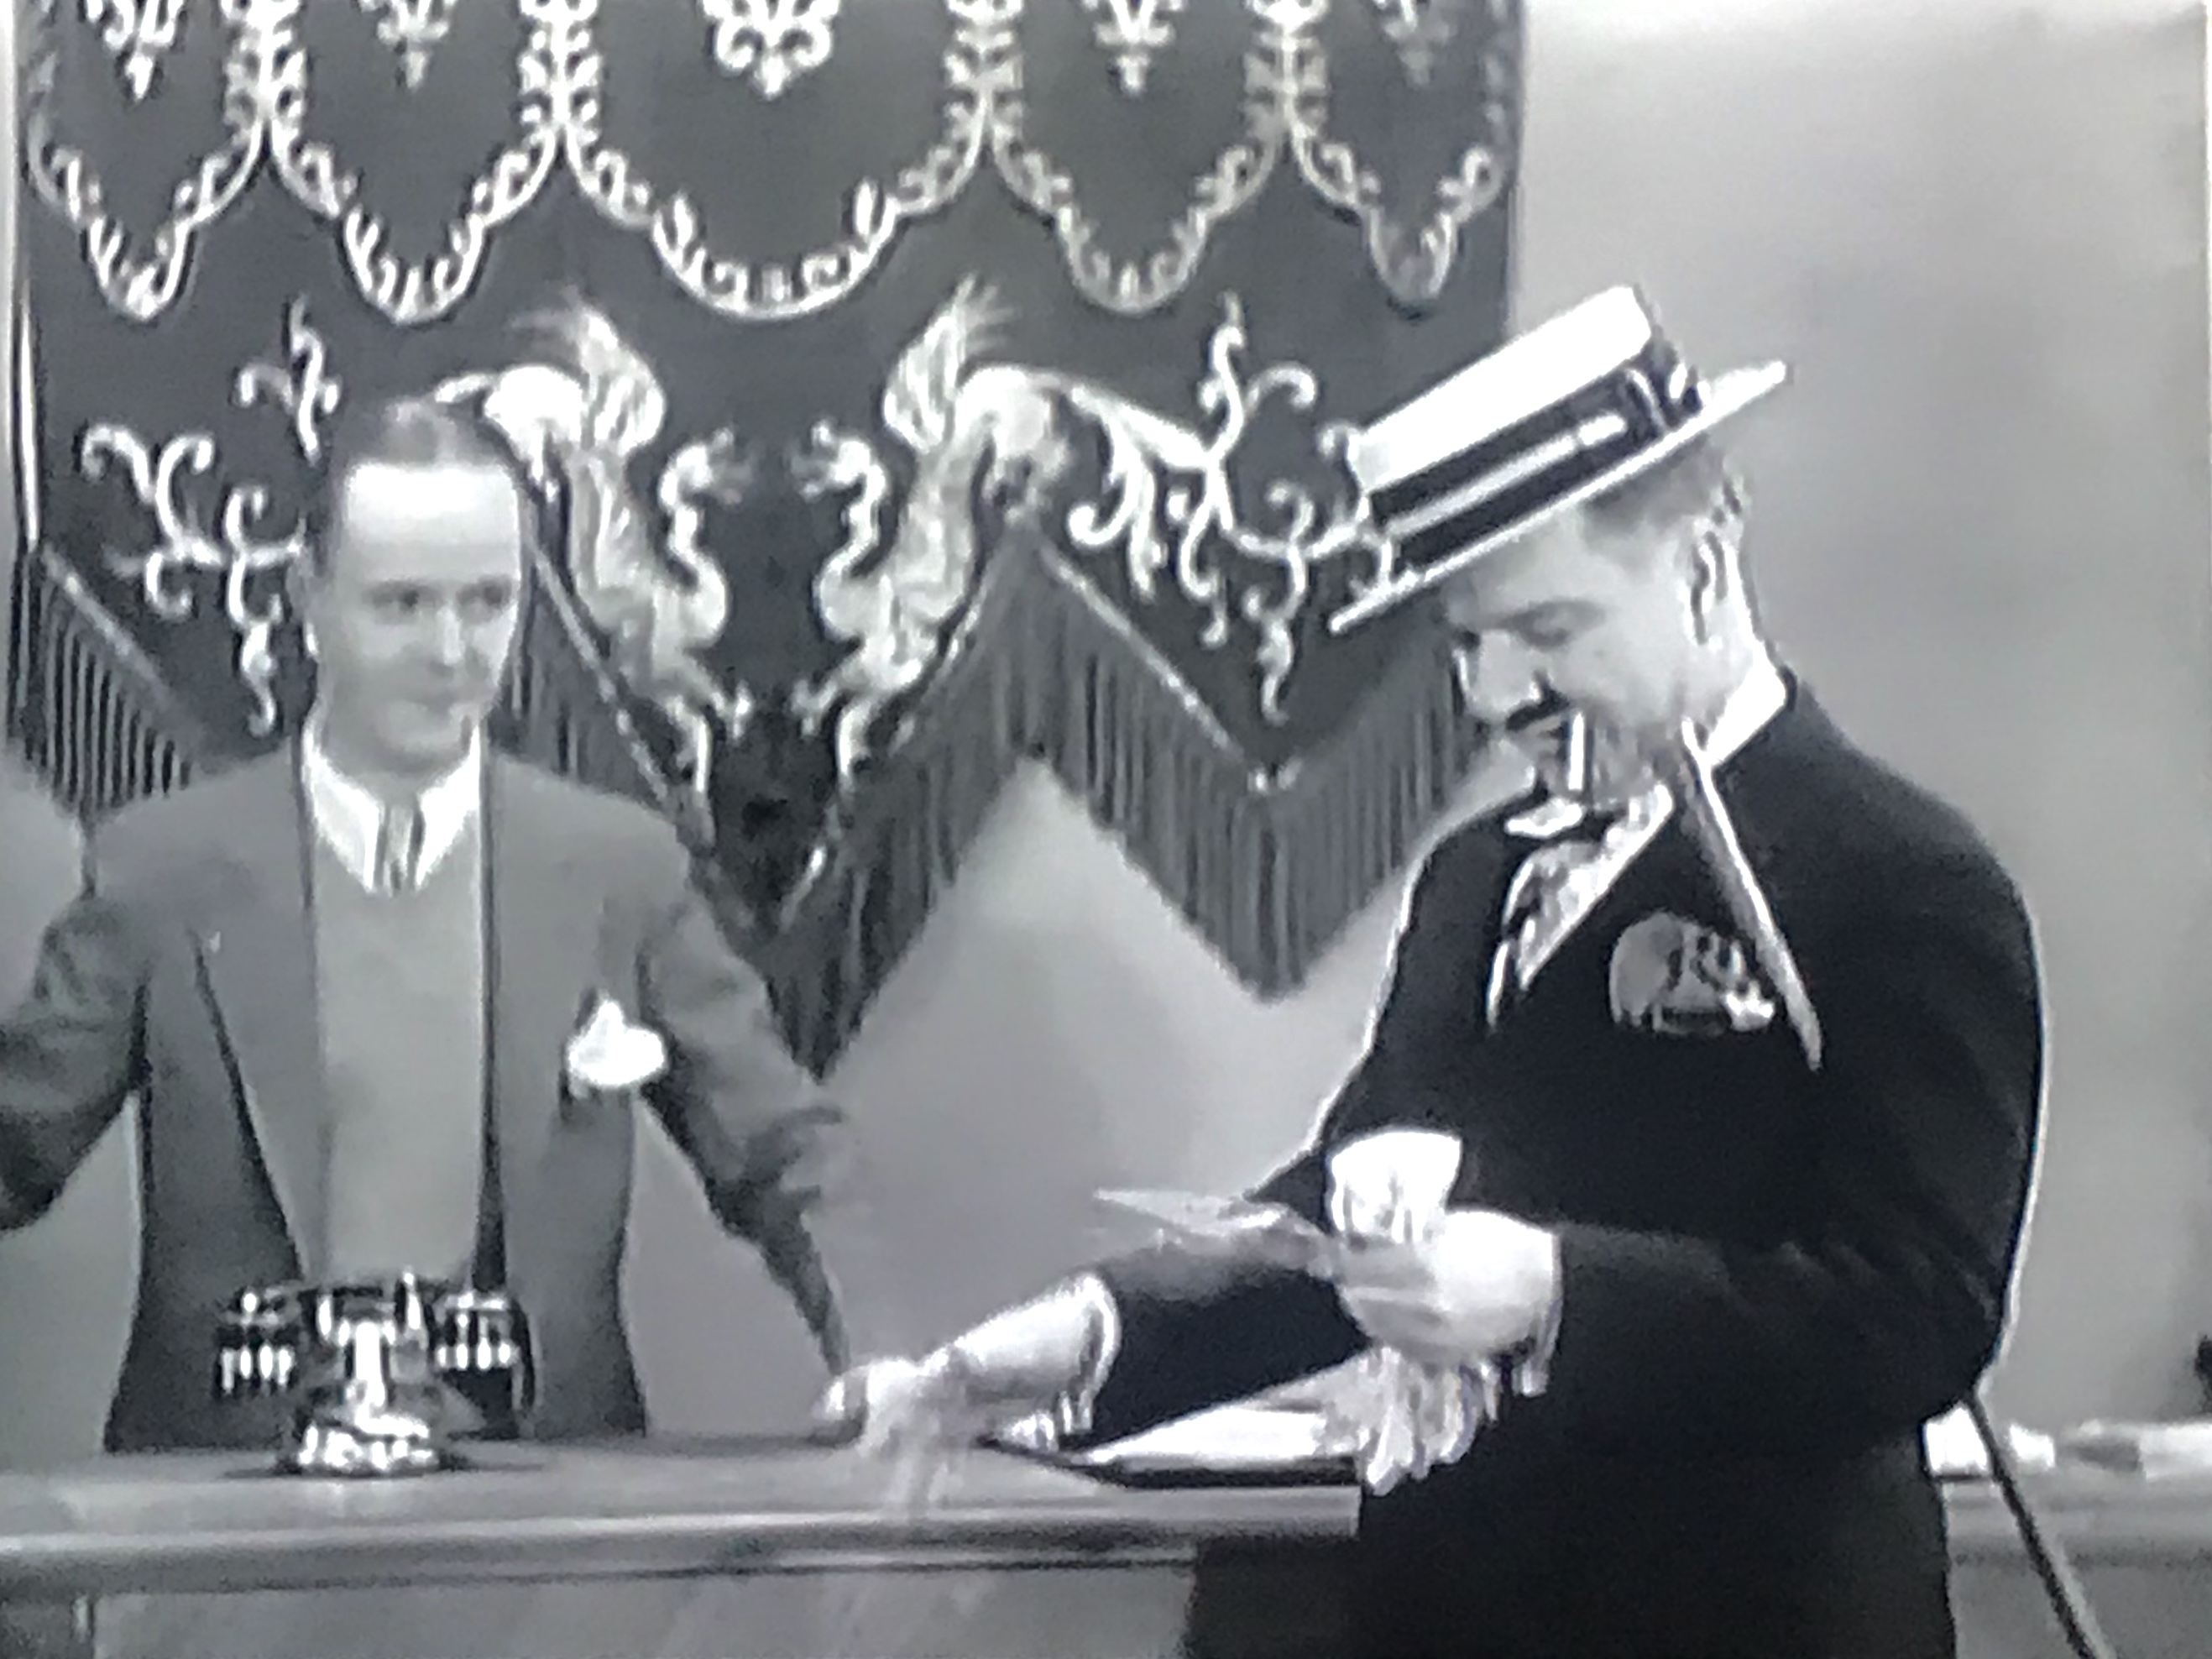 W.C. Fields and Johnny Kane in The Golf Specialist (1930)